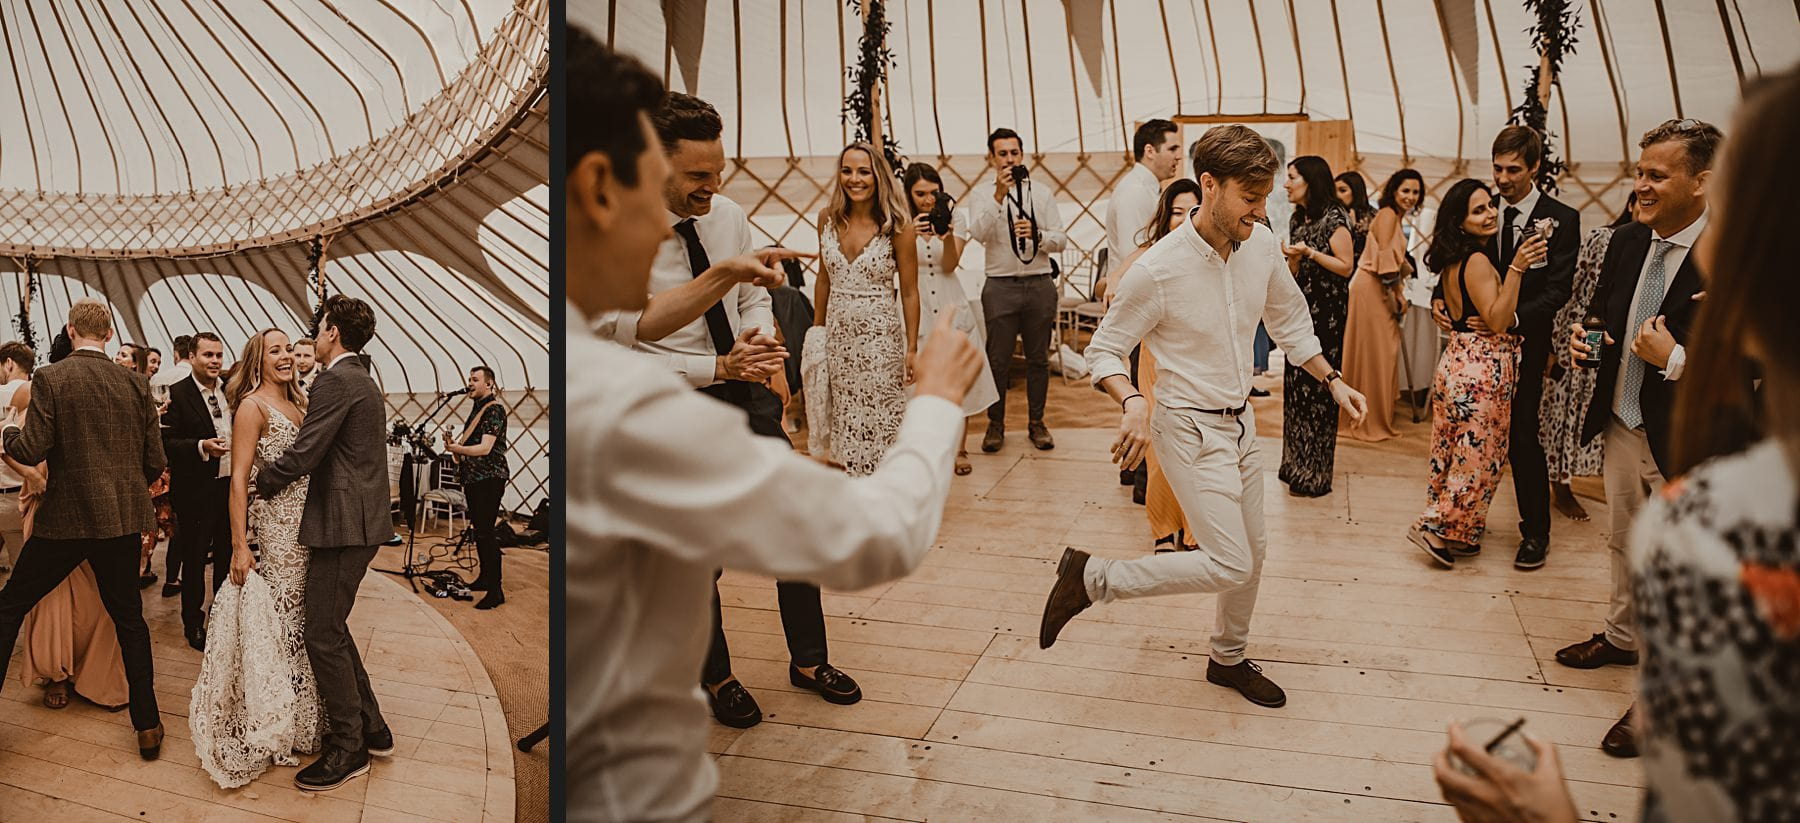 Guests dancing in front of band